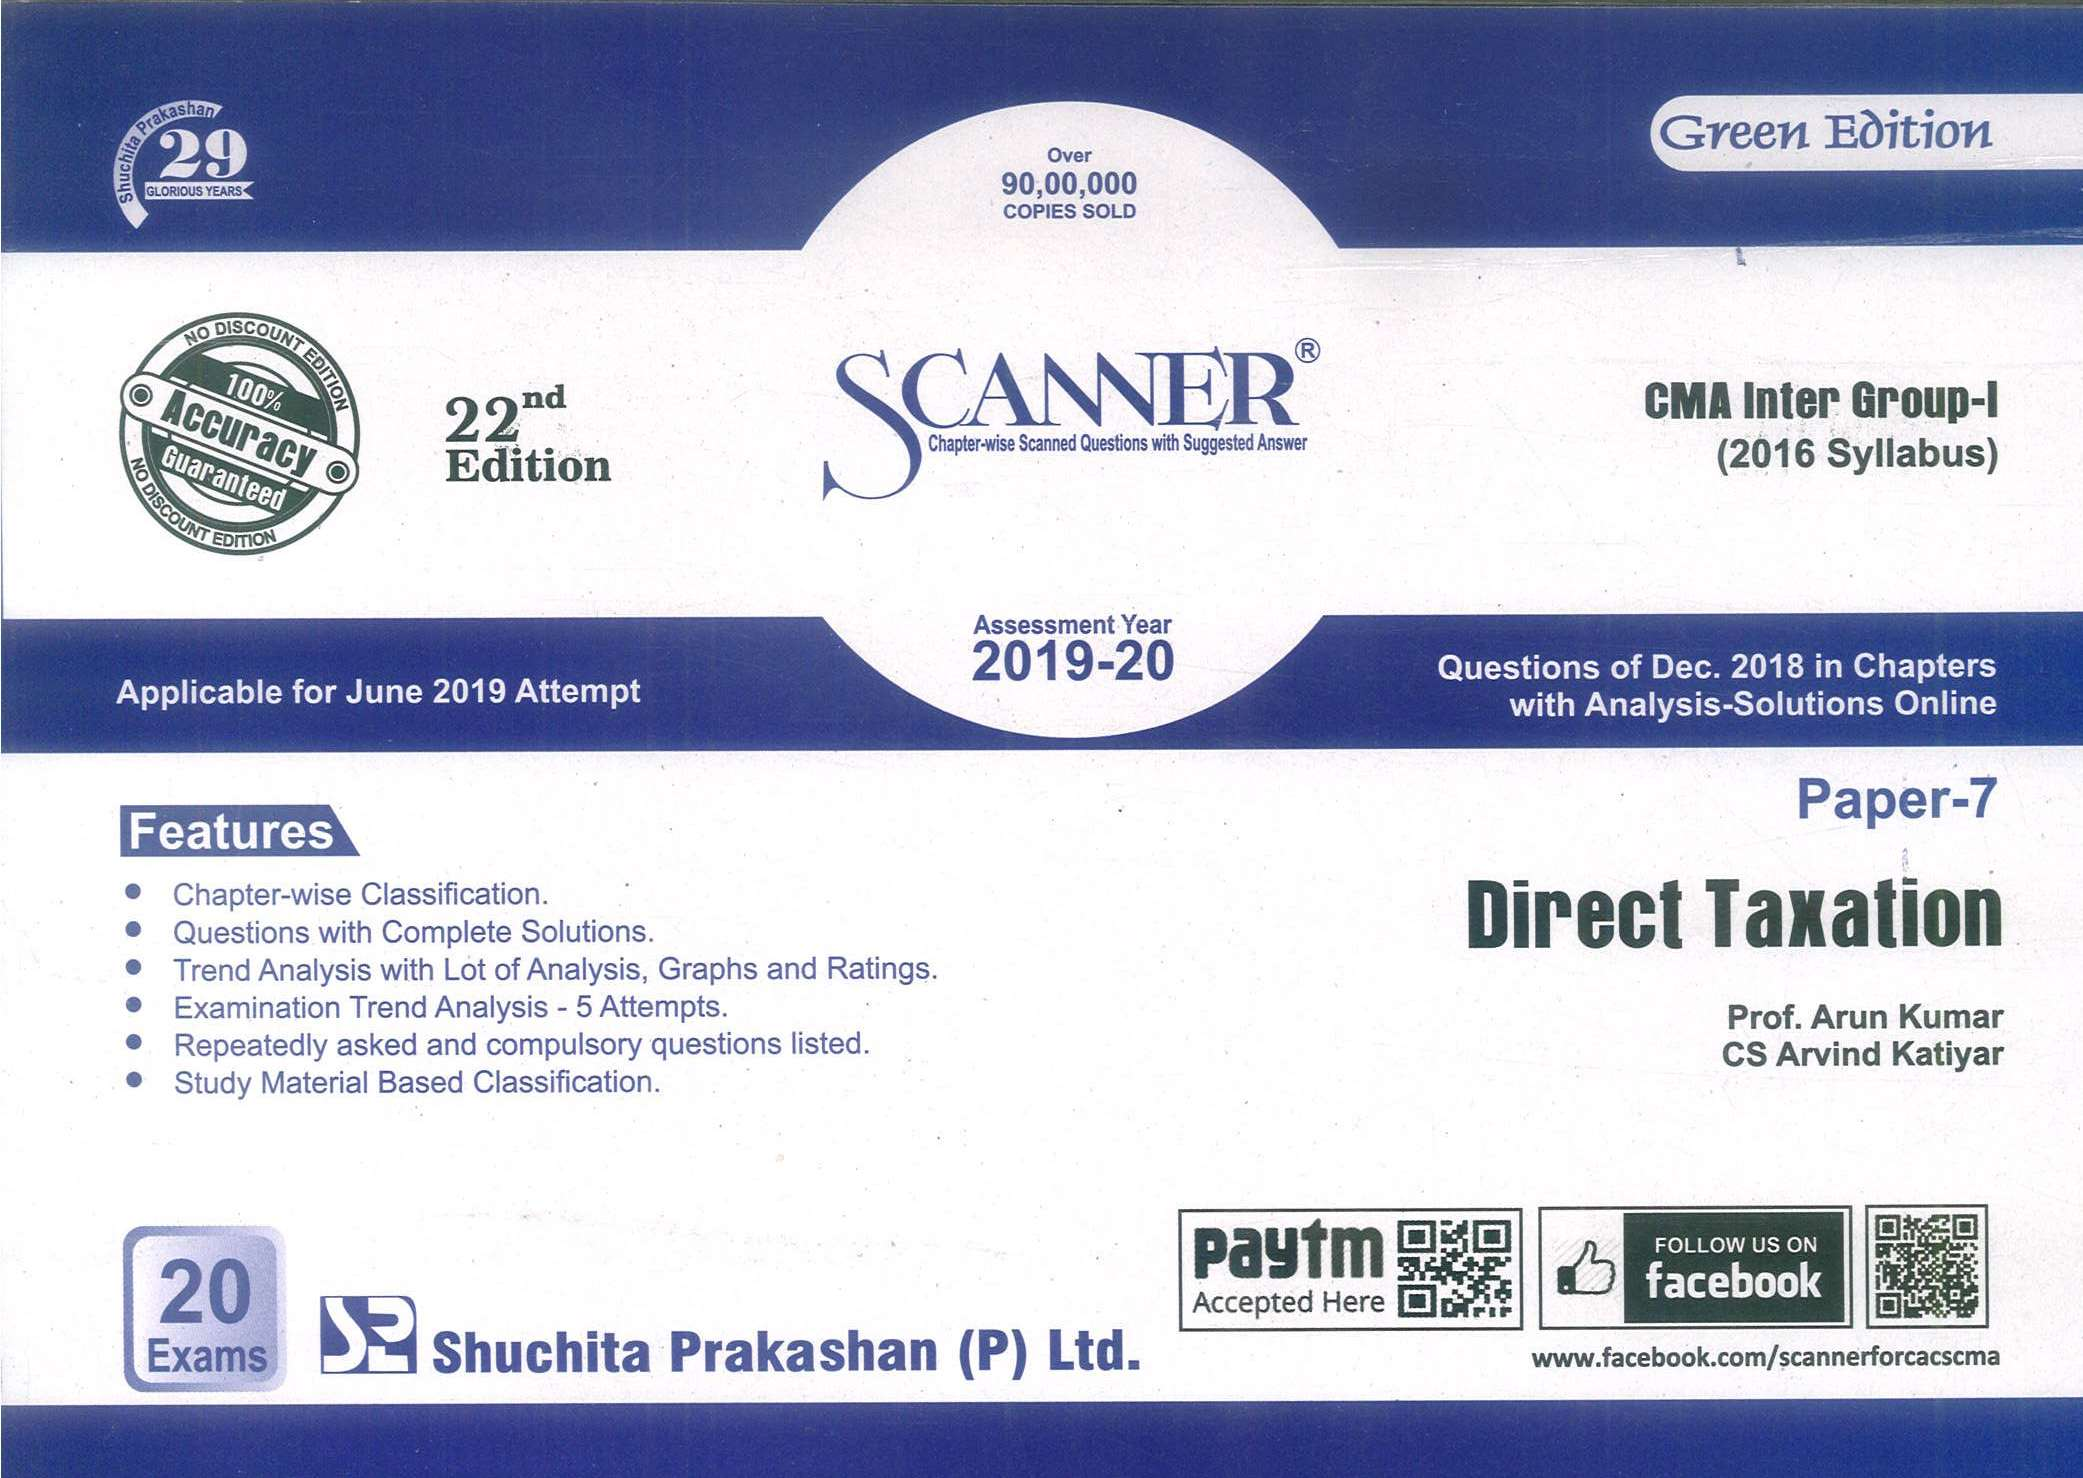 Shuchita Solved Scanner Direct Taxation for CMA Inter New Syllabus Group I Paper 7 by Prof. Arun Kumar and CA Raj K Agarwal for June 2019 Exam (Shuchita Prakashan) Edition 22th Jan 2019